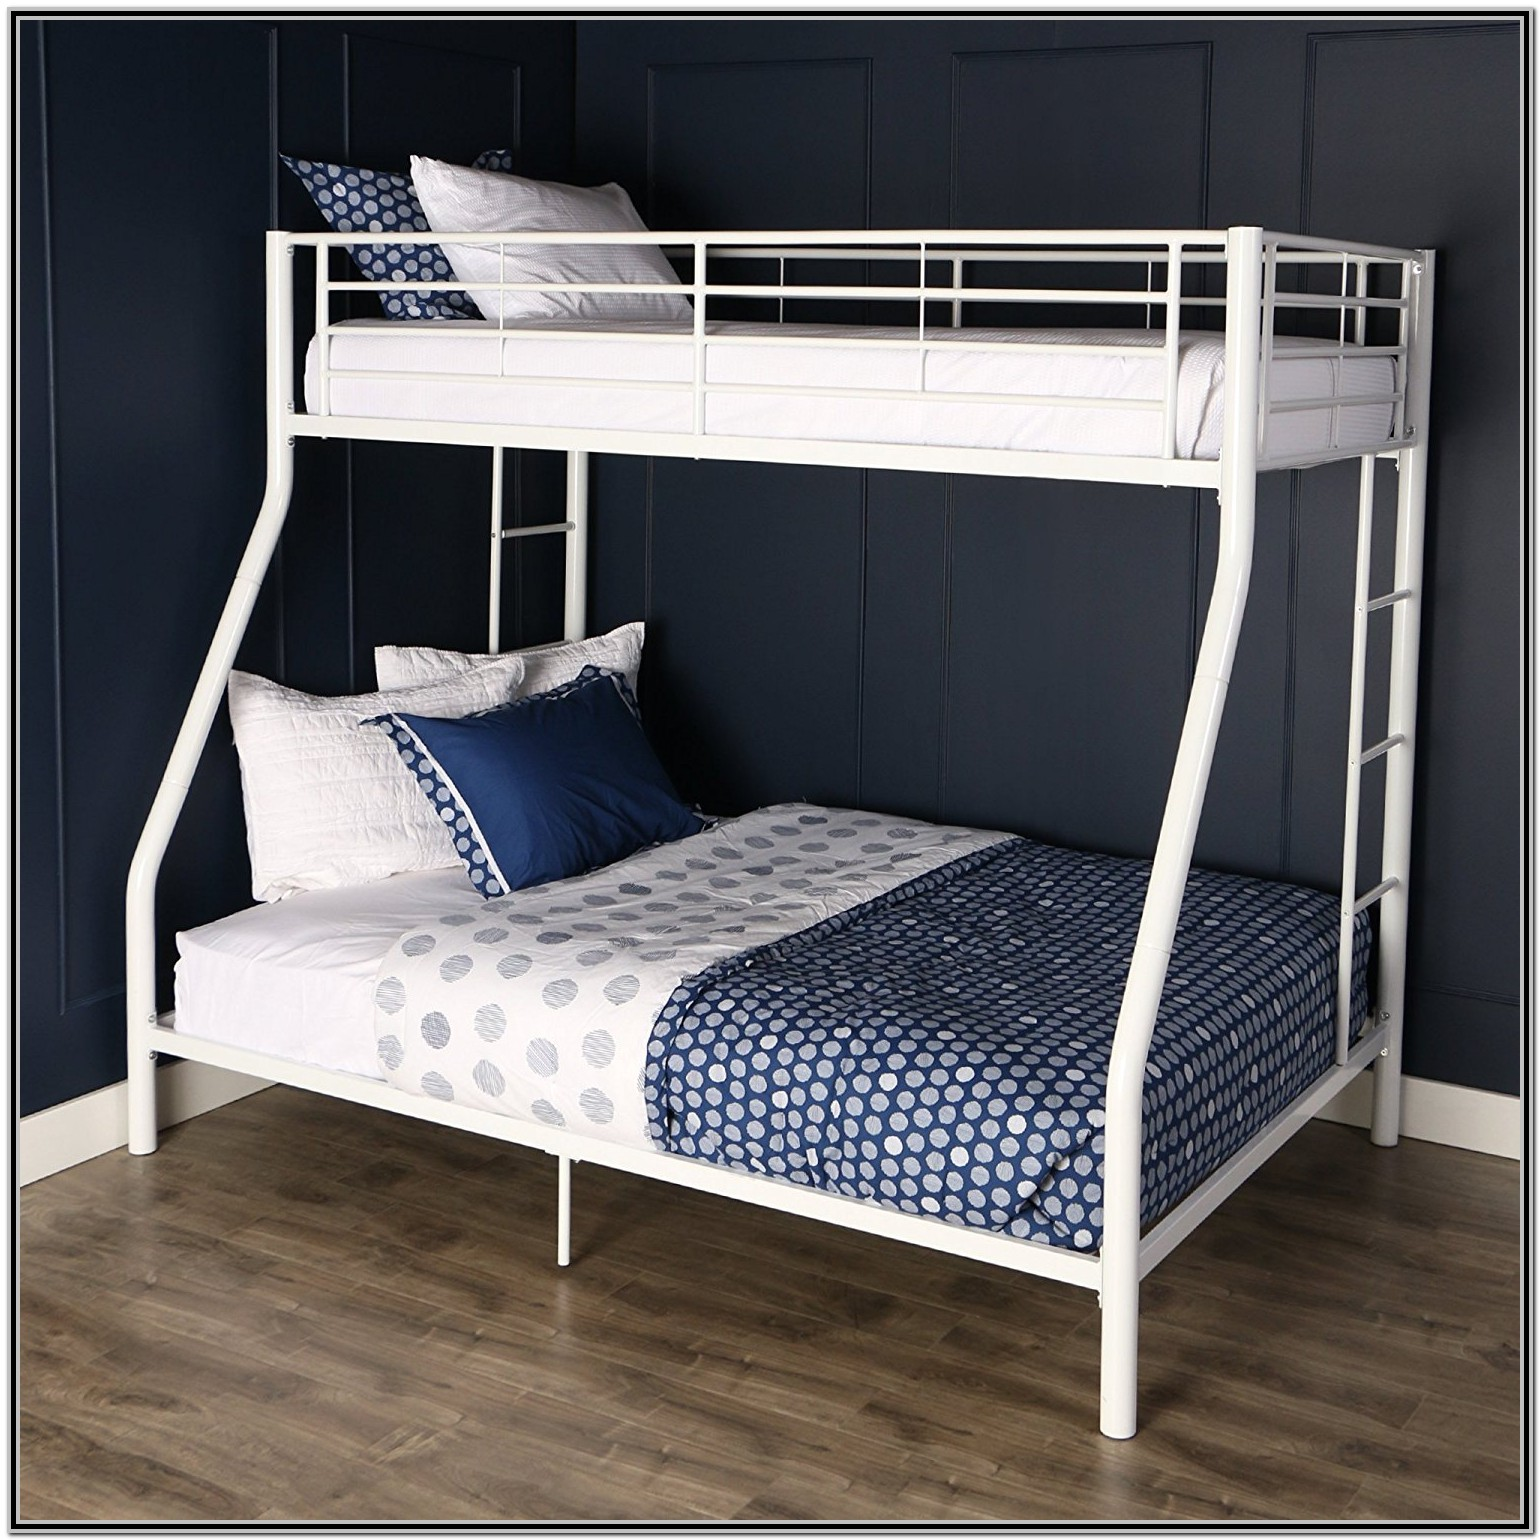 Twin Bunk Beds With Mattress Included